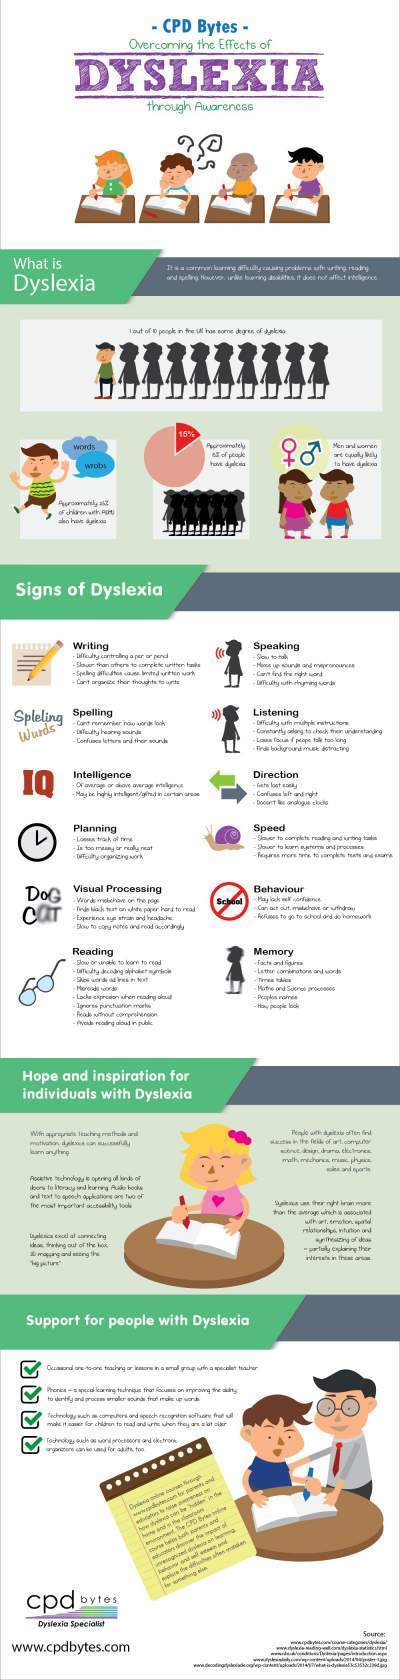 CPD Bytes - Overcoming the Effects of Dyslexia through Awareness | Infographics | Scoop.it